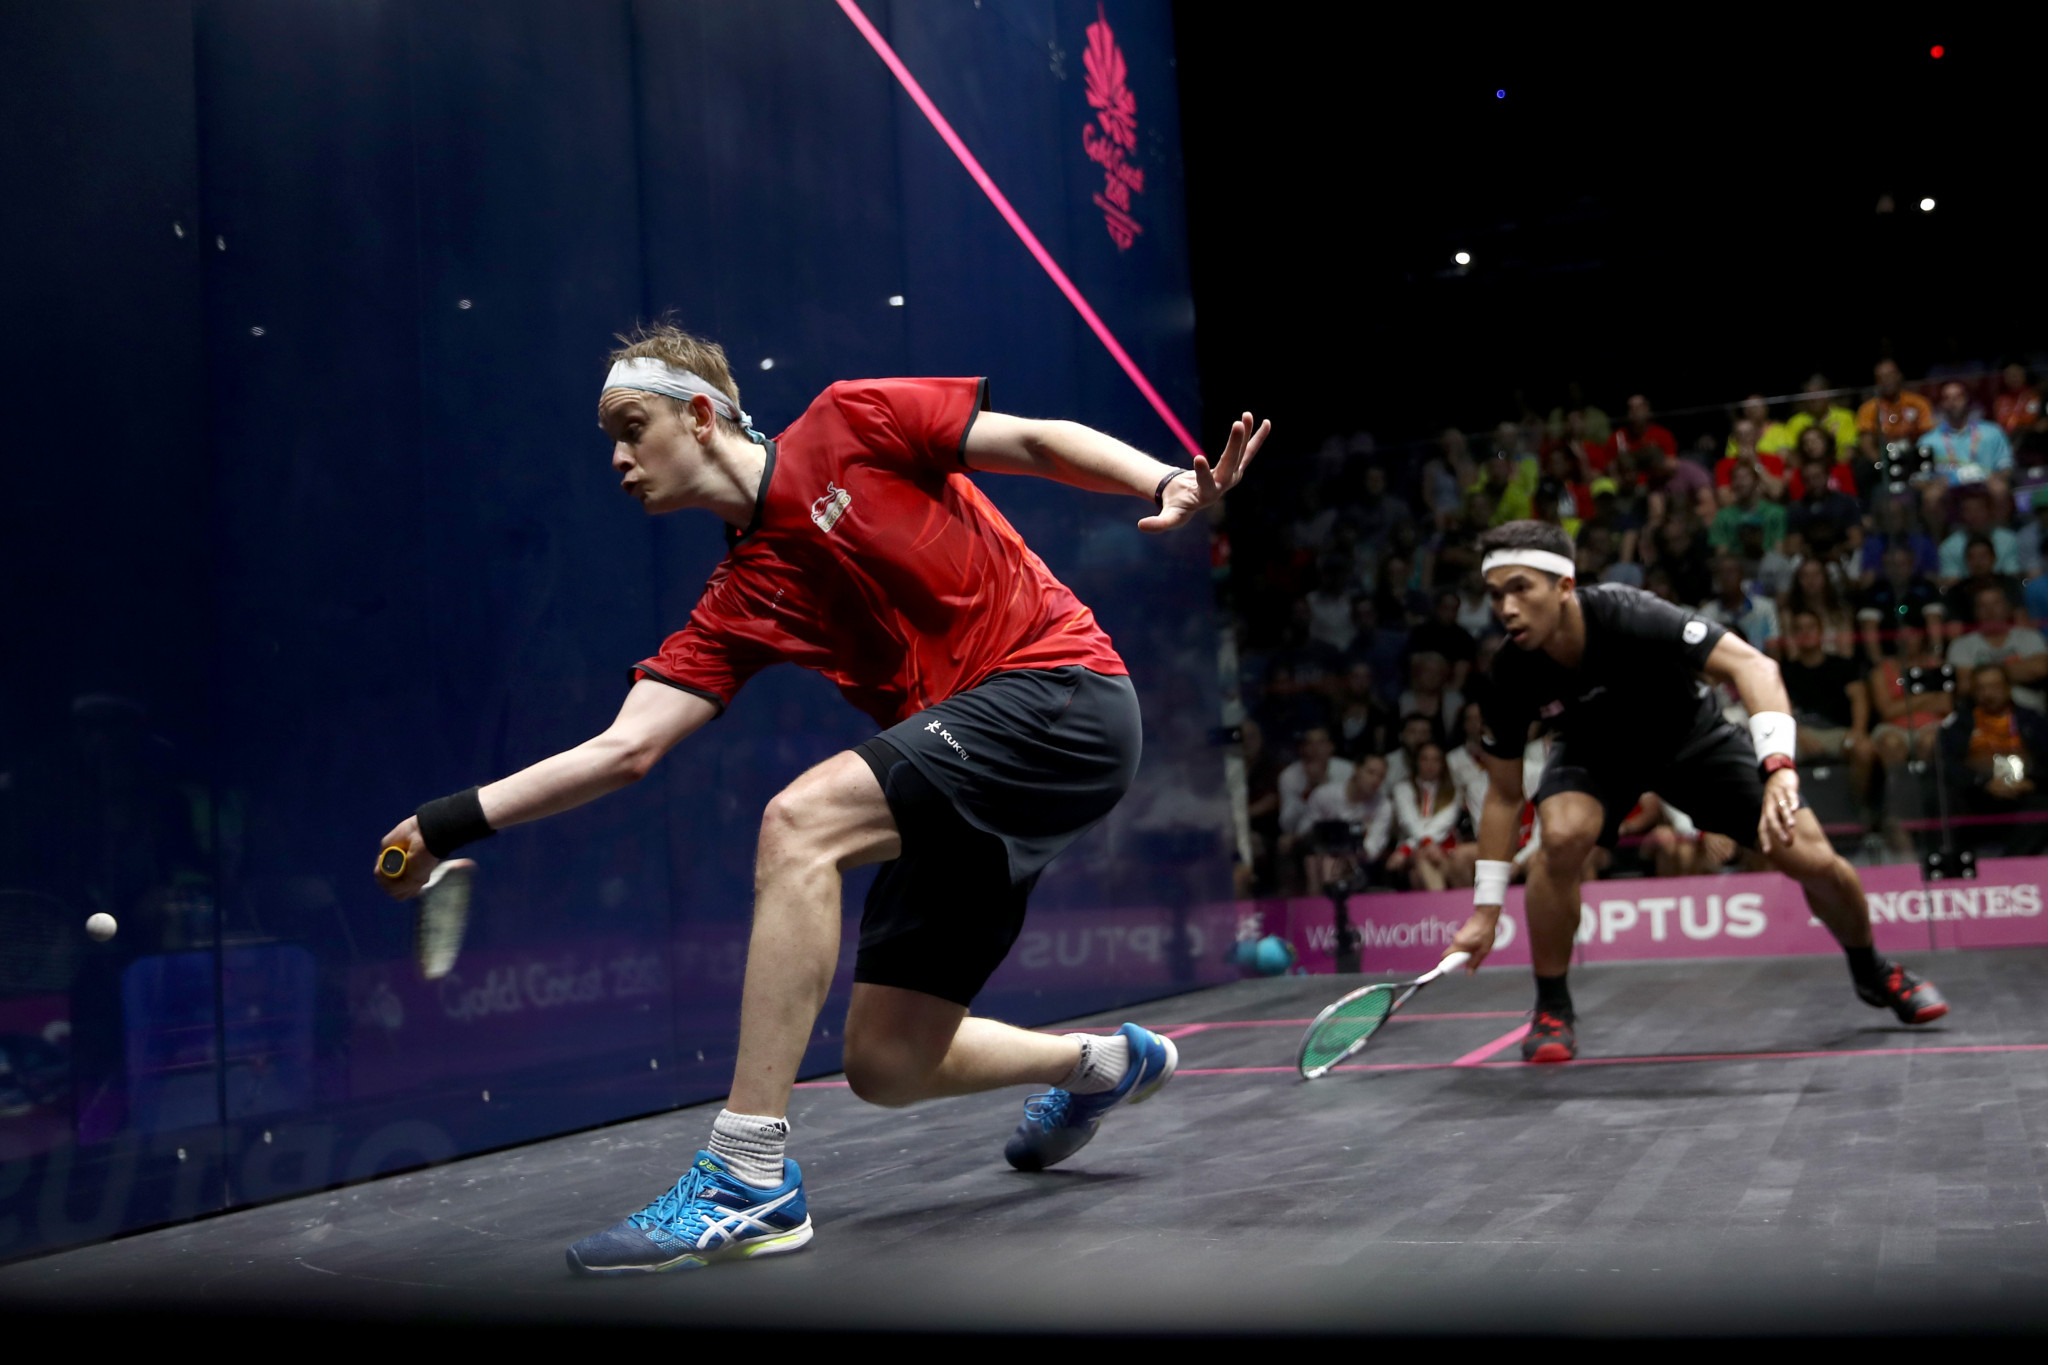 PSA highlight squash's health benefits after new data released